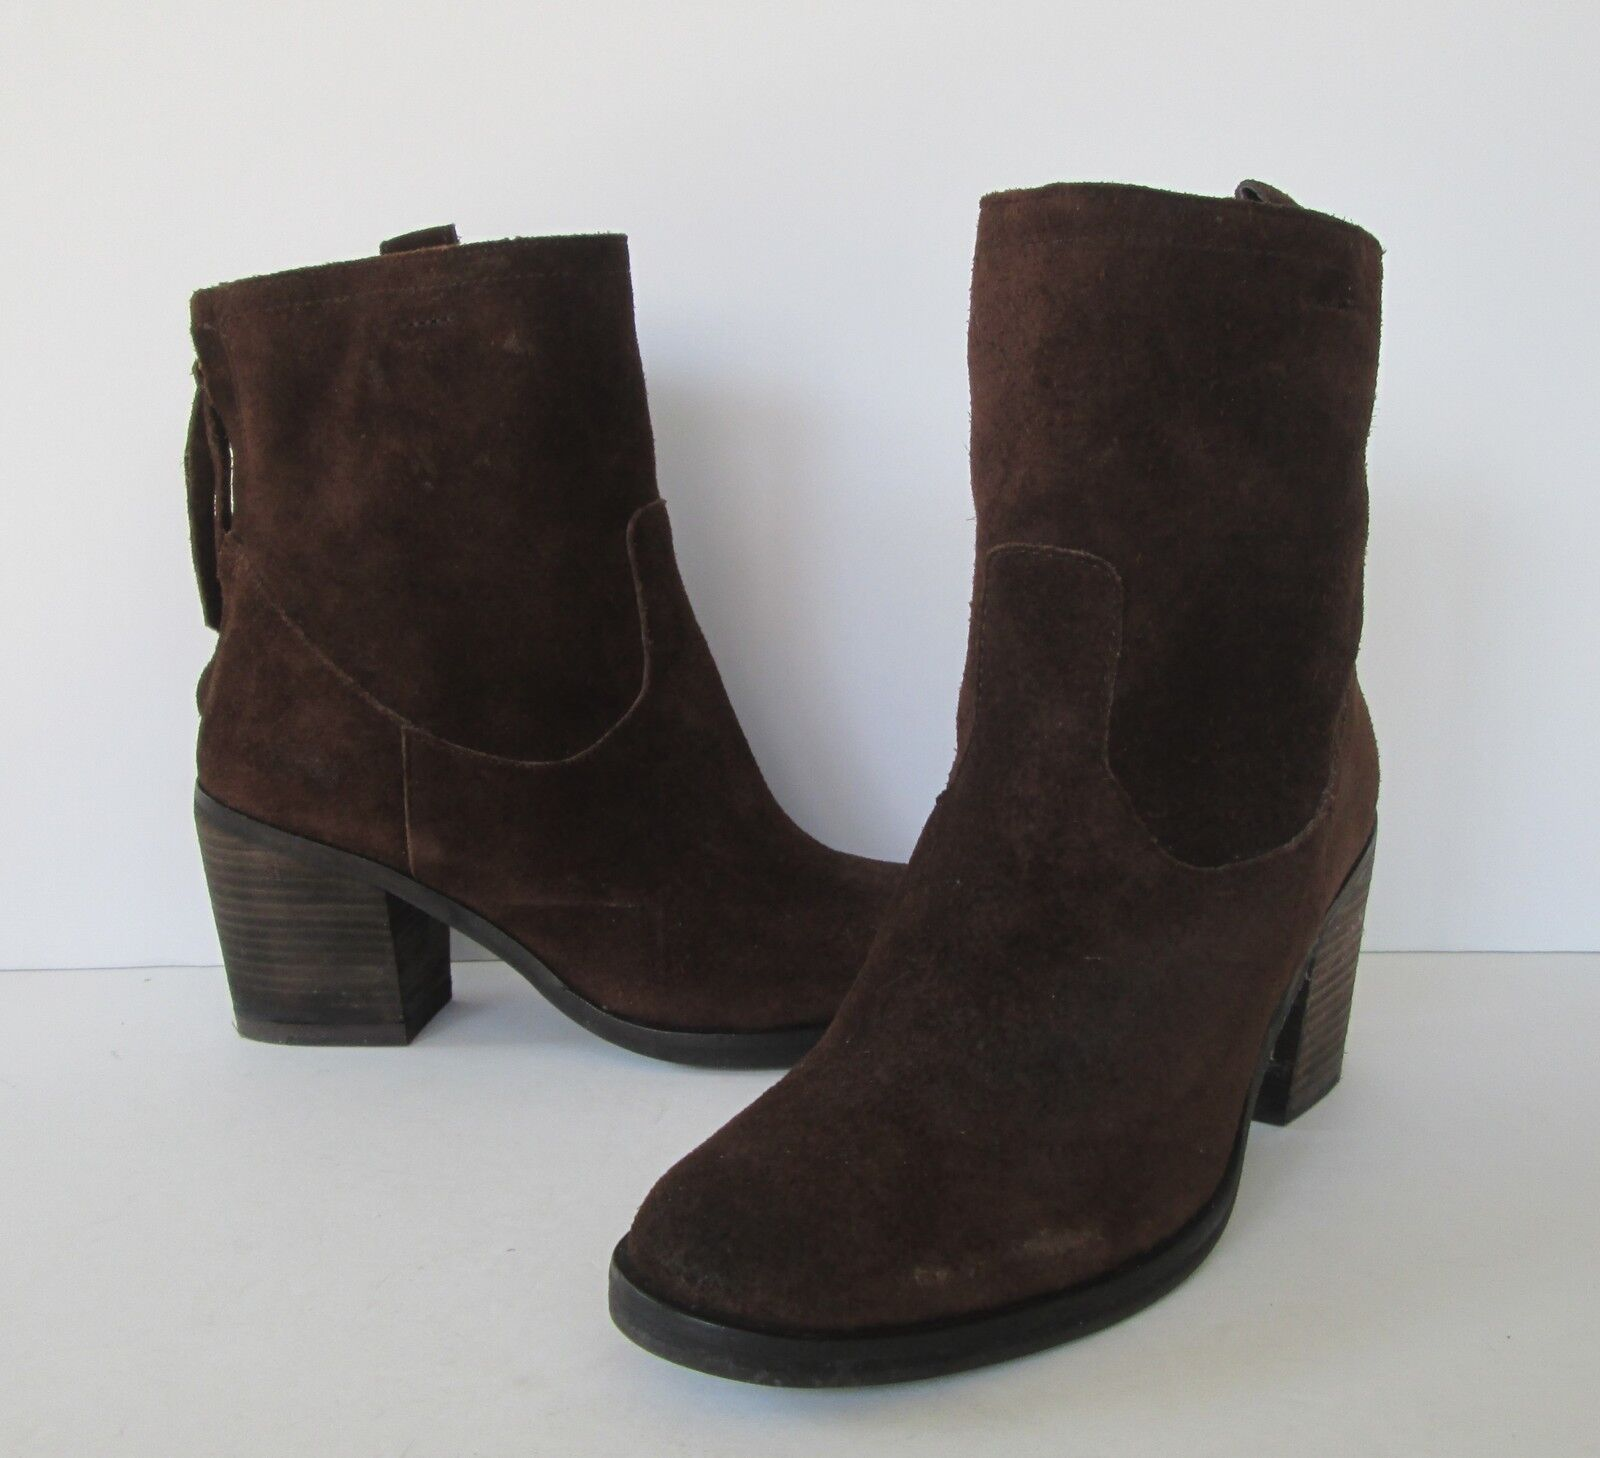 Sam Edelman Womens Brown Suede Leather  Farrell  Zip Back Ankle Boots 6 M